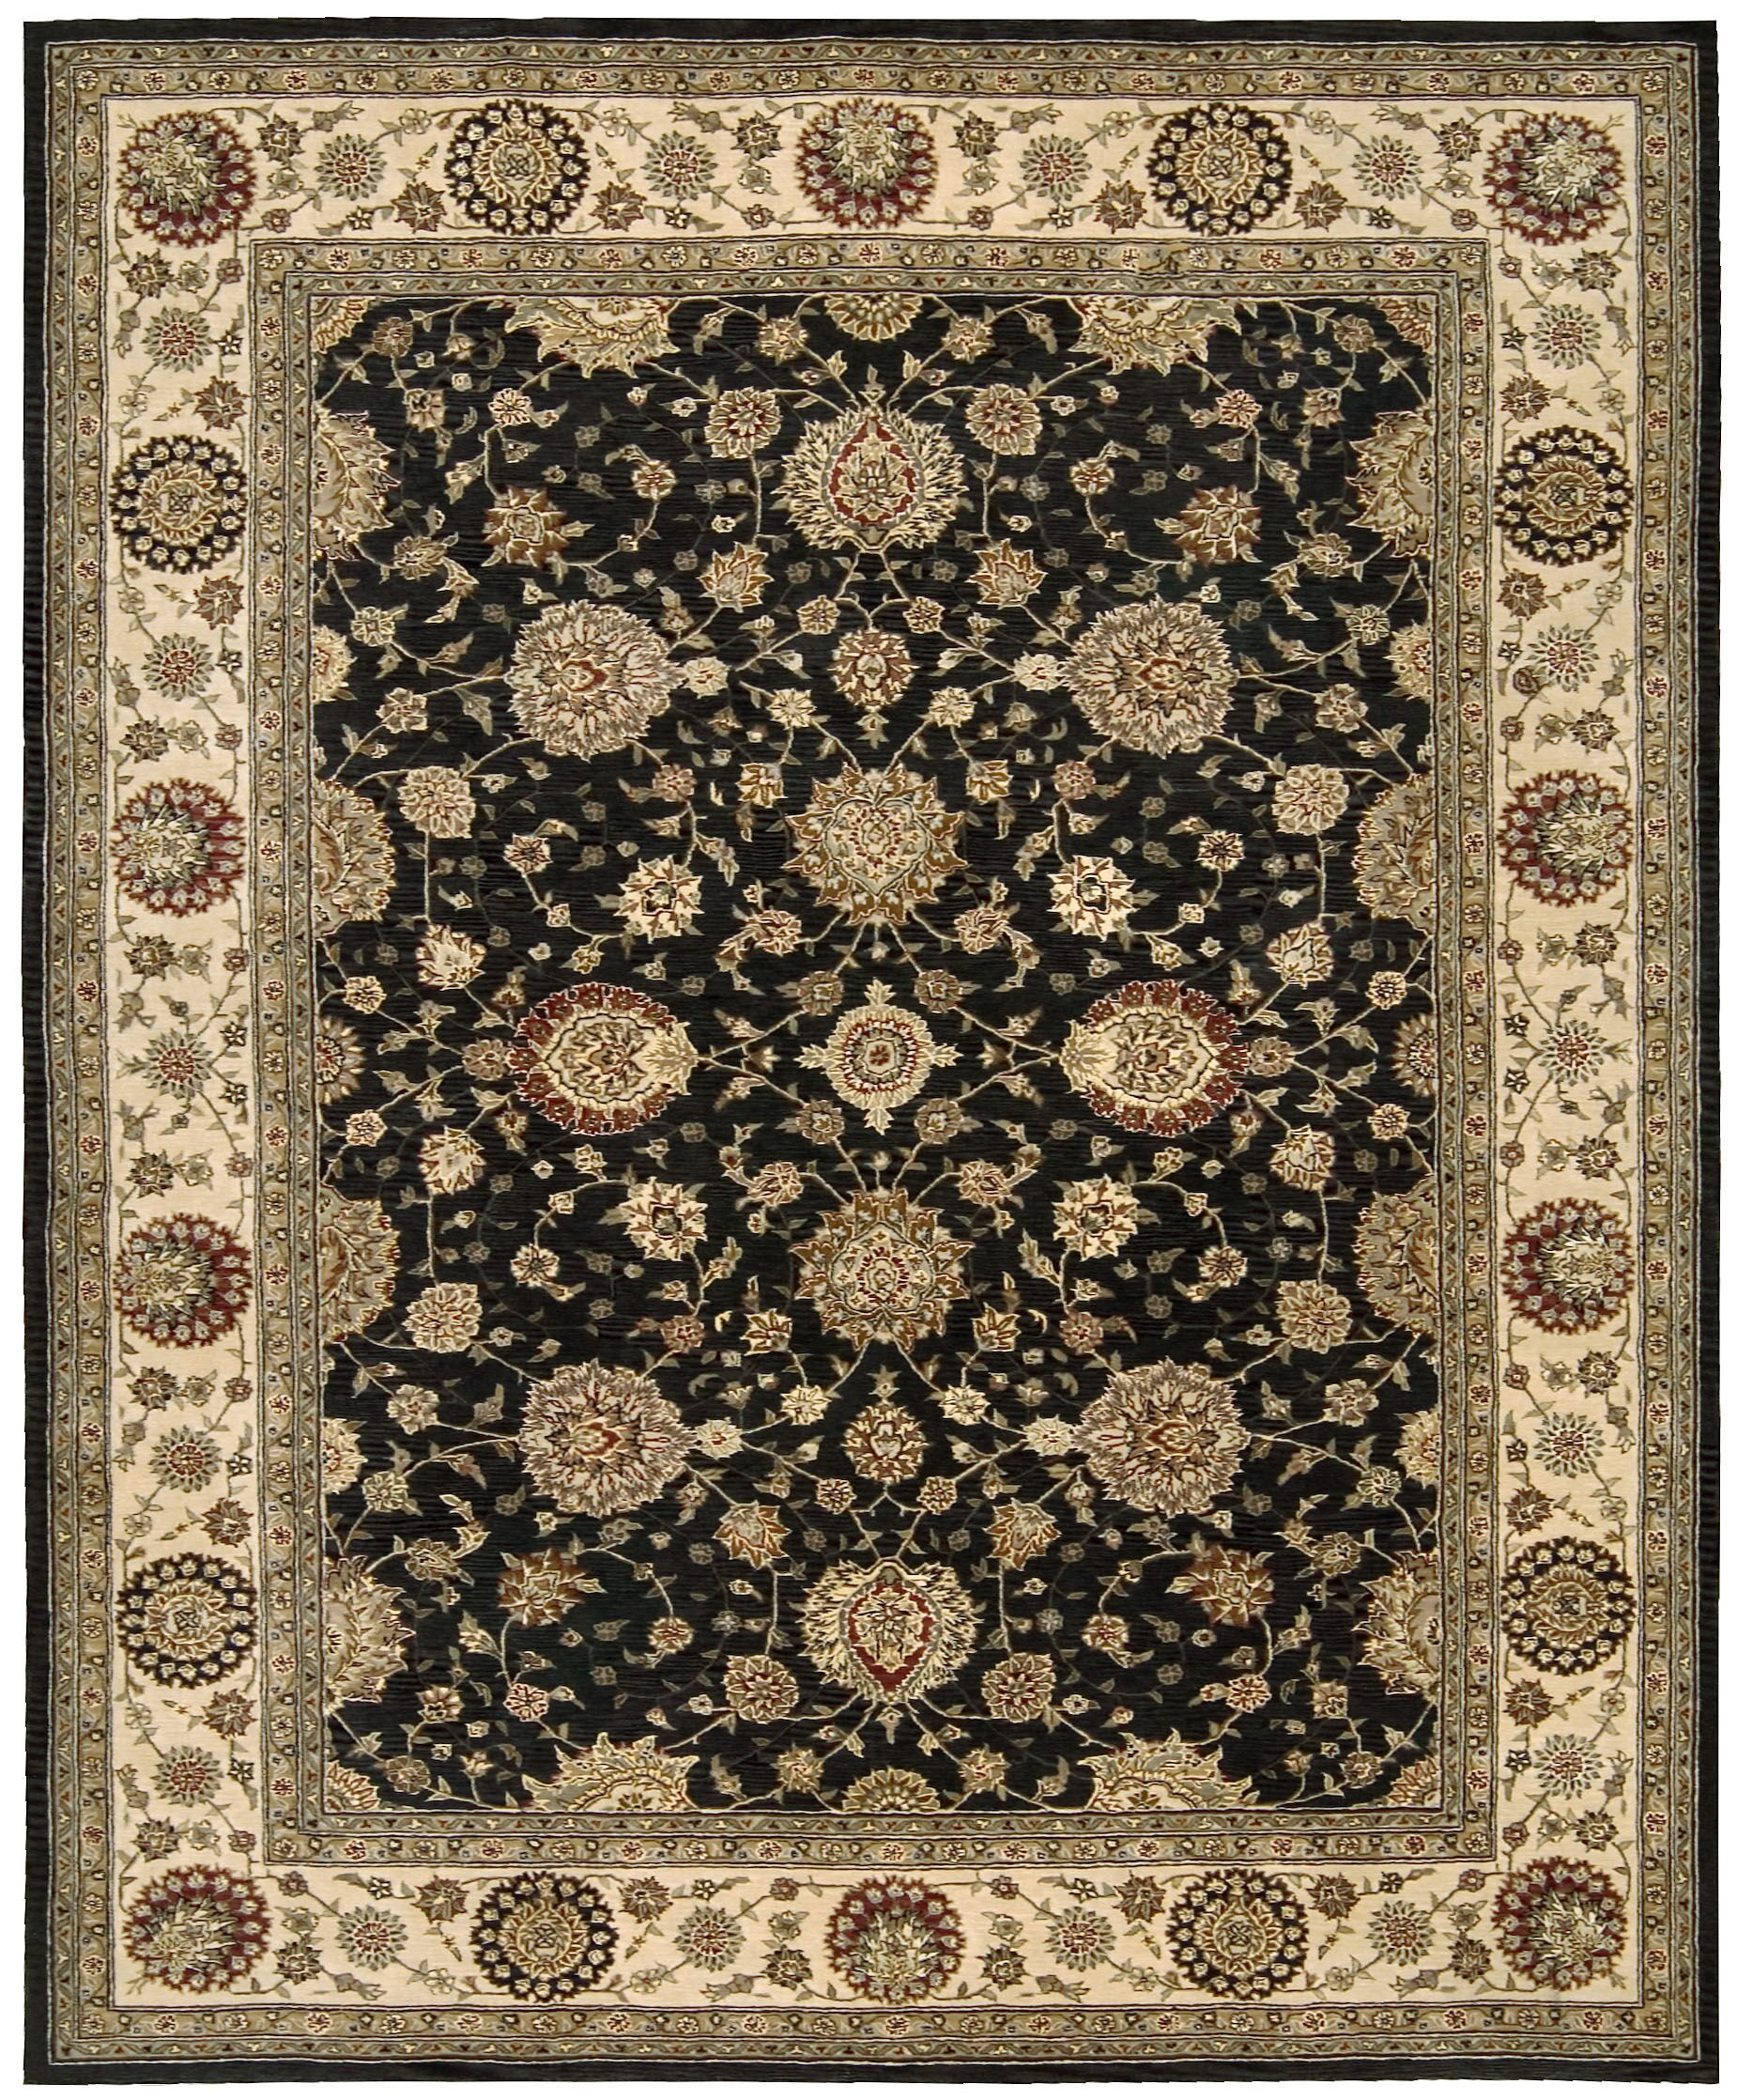 Ellerswick Hand Woven Wool Midnight Indoor Area Rug Rug Size: Rectangle 8'6